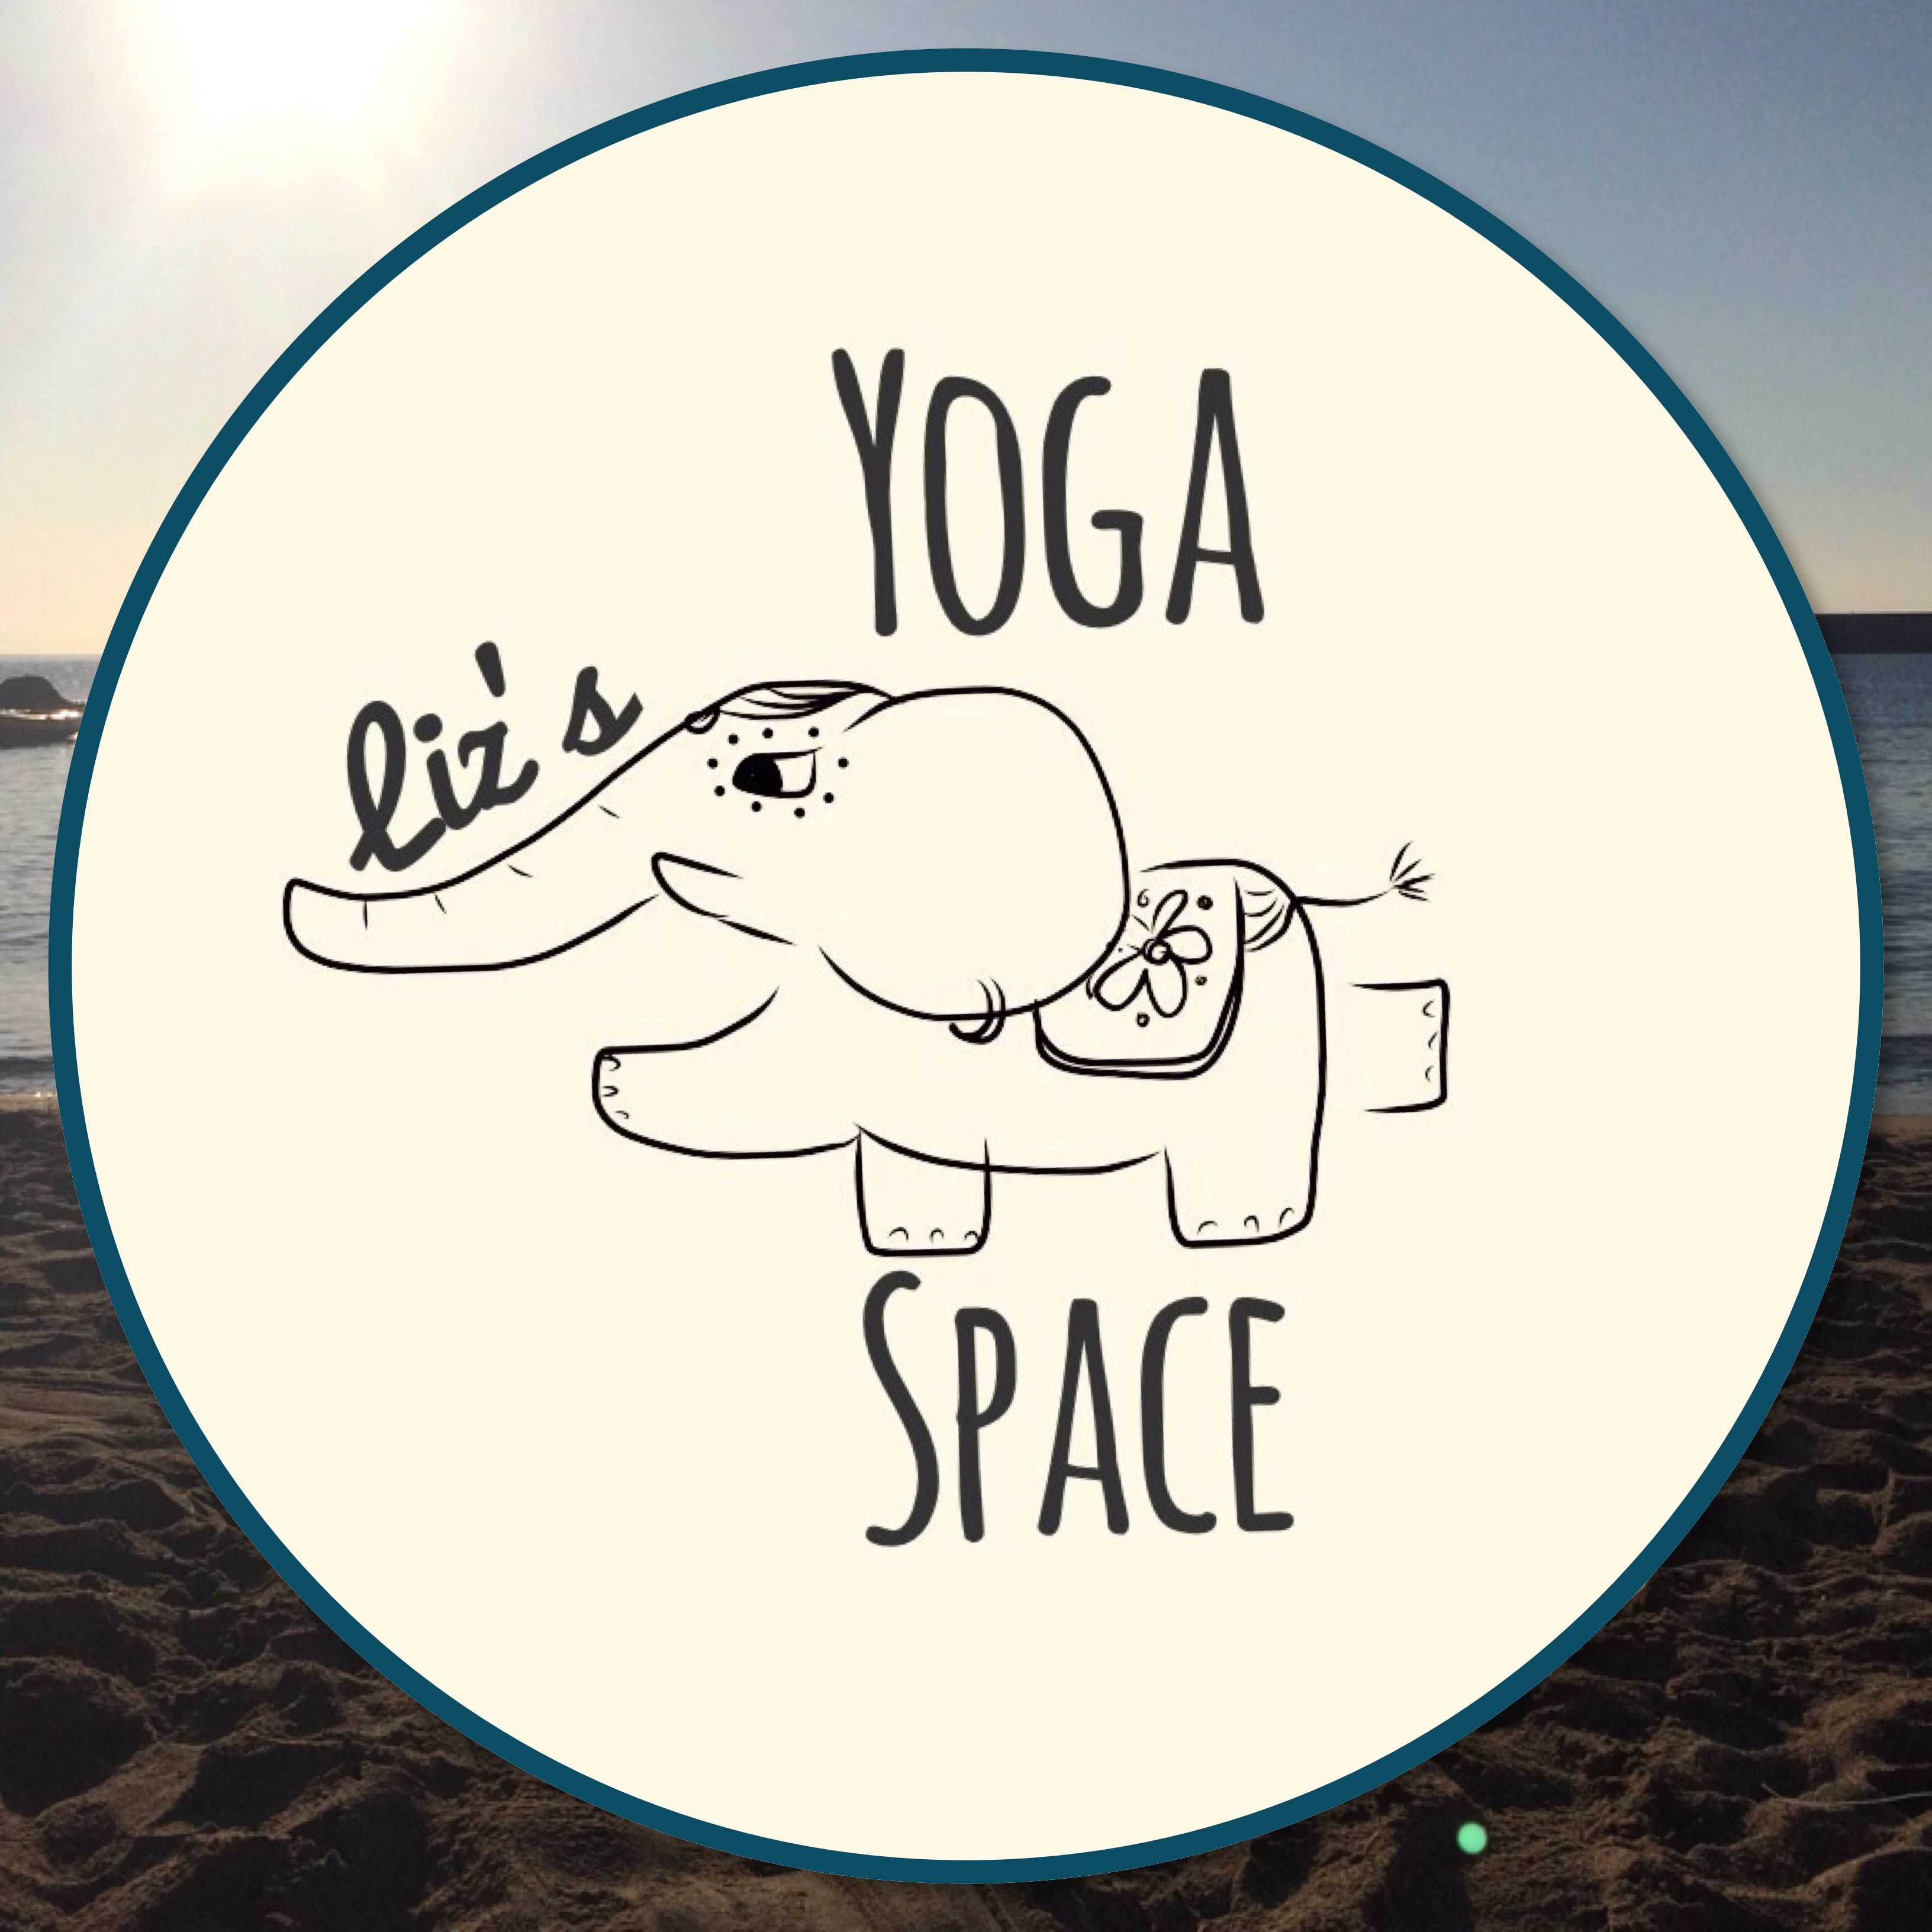 Liz's Yoga Space